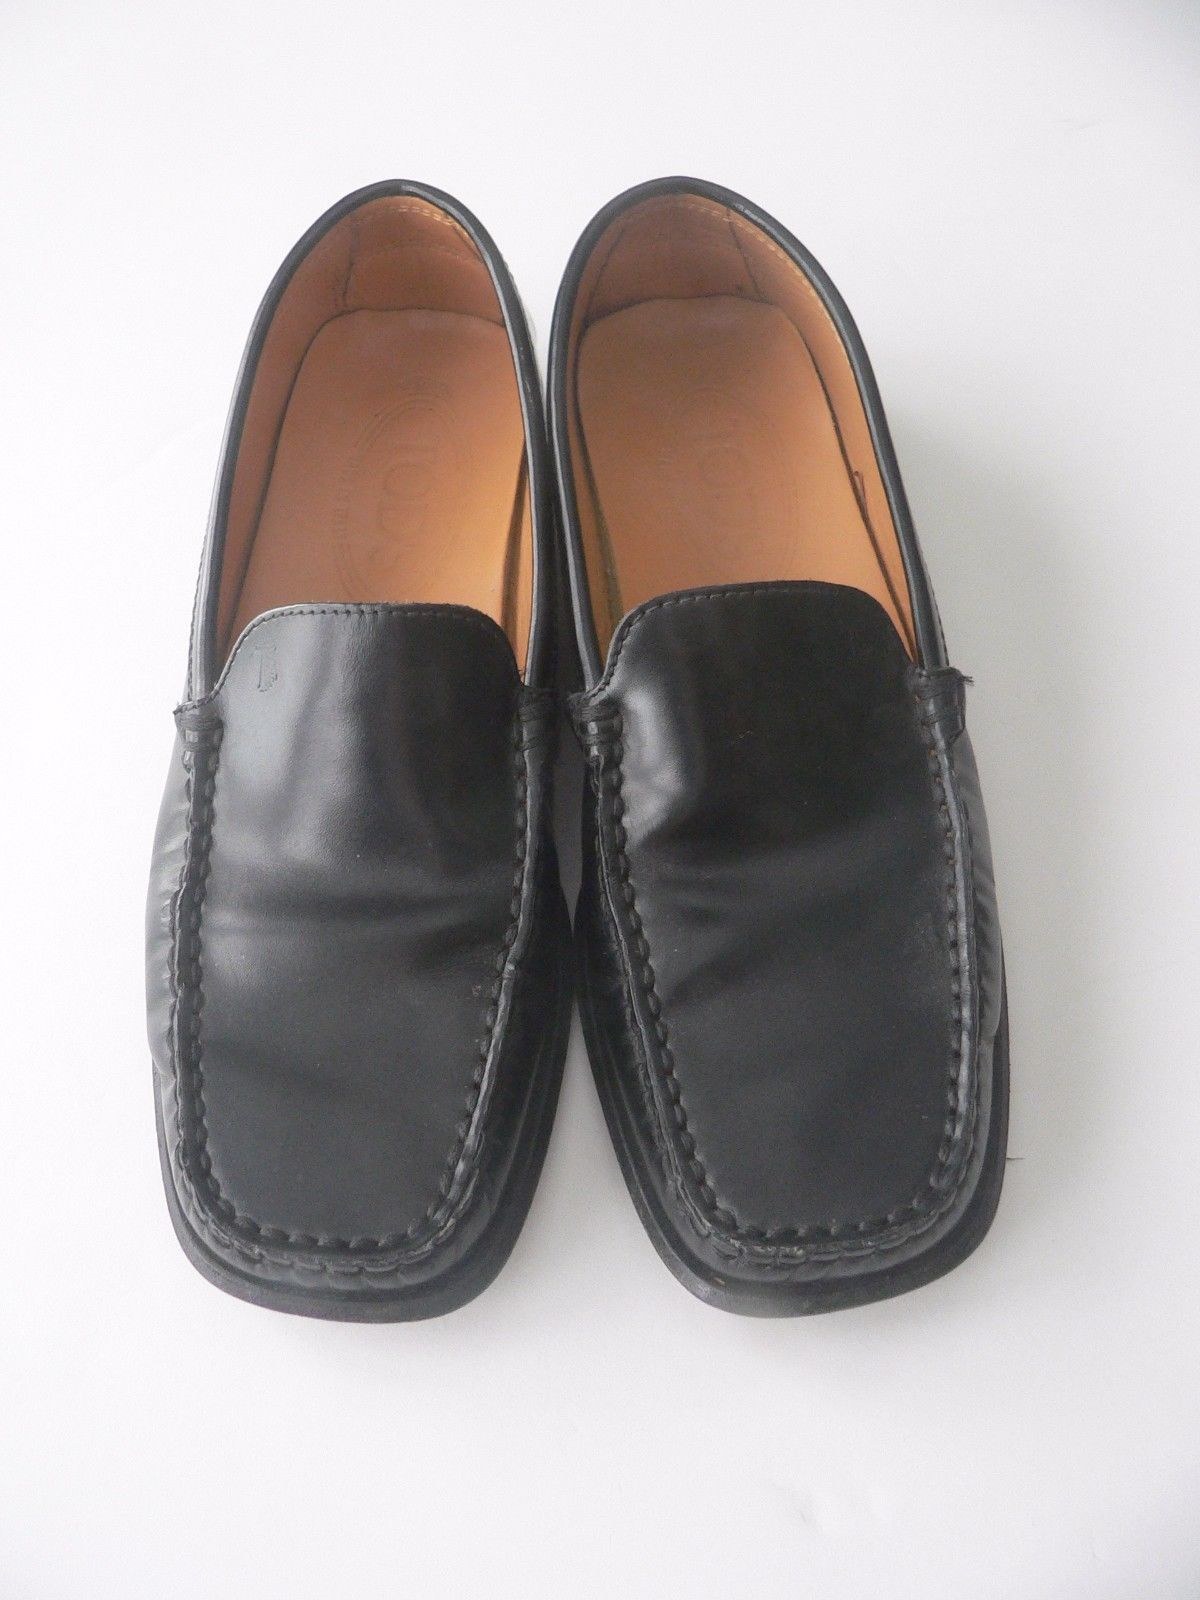 Primary image for TOD'S 5.5 loafers black leather driving shoes Italy flat sleek patent penny